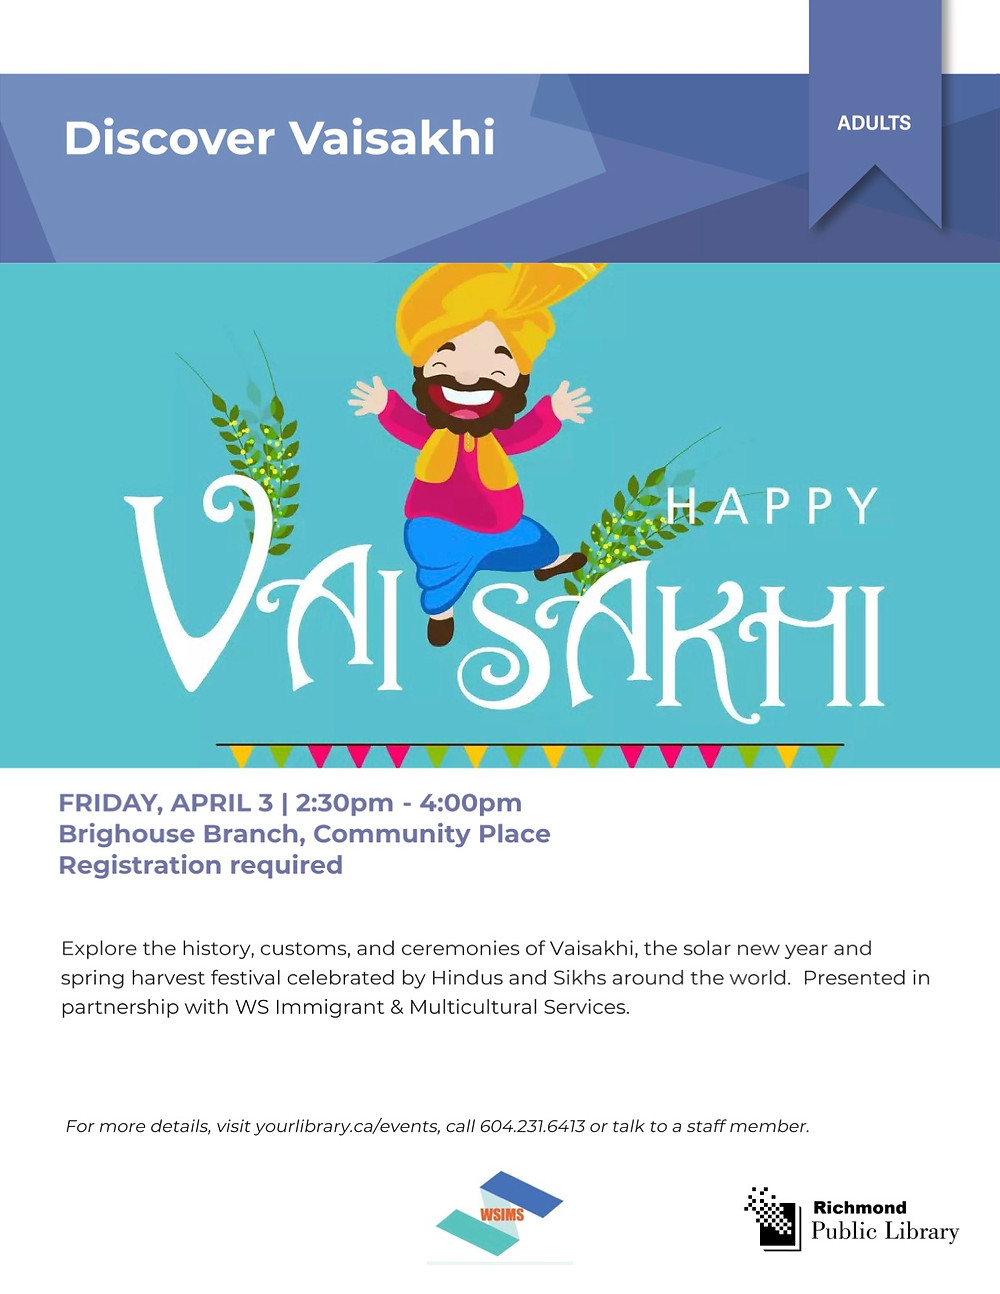 20200403 Discover Vaisakhi poster, organized by WS Immigrant and Multicultural Services Society